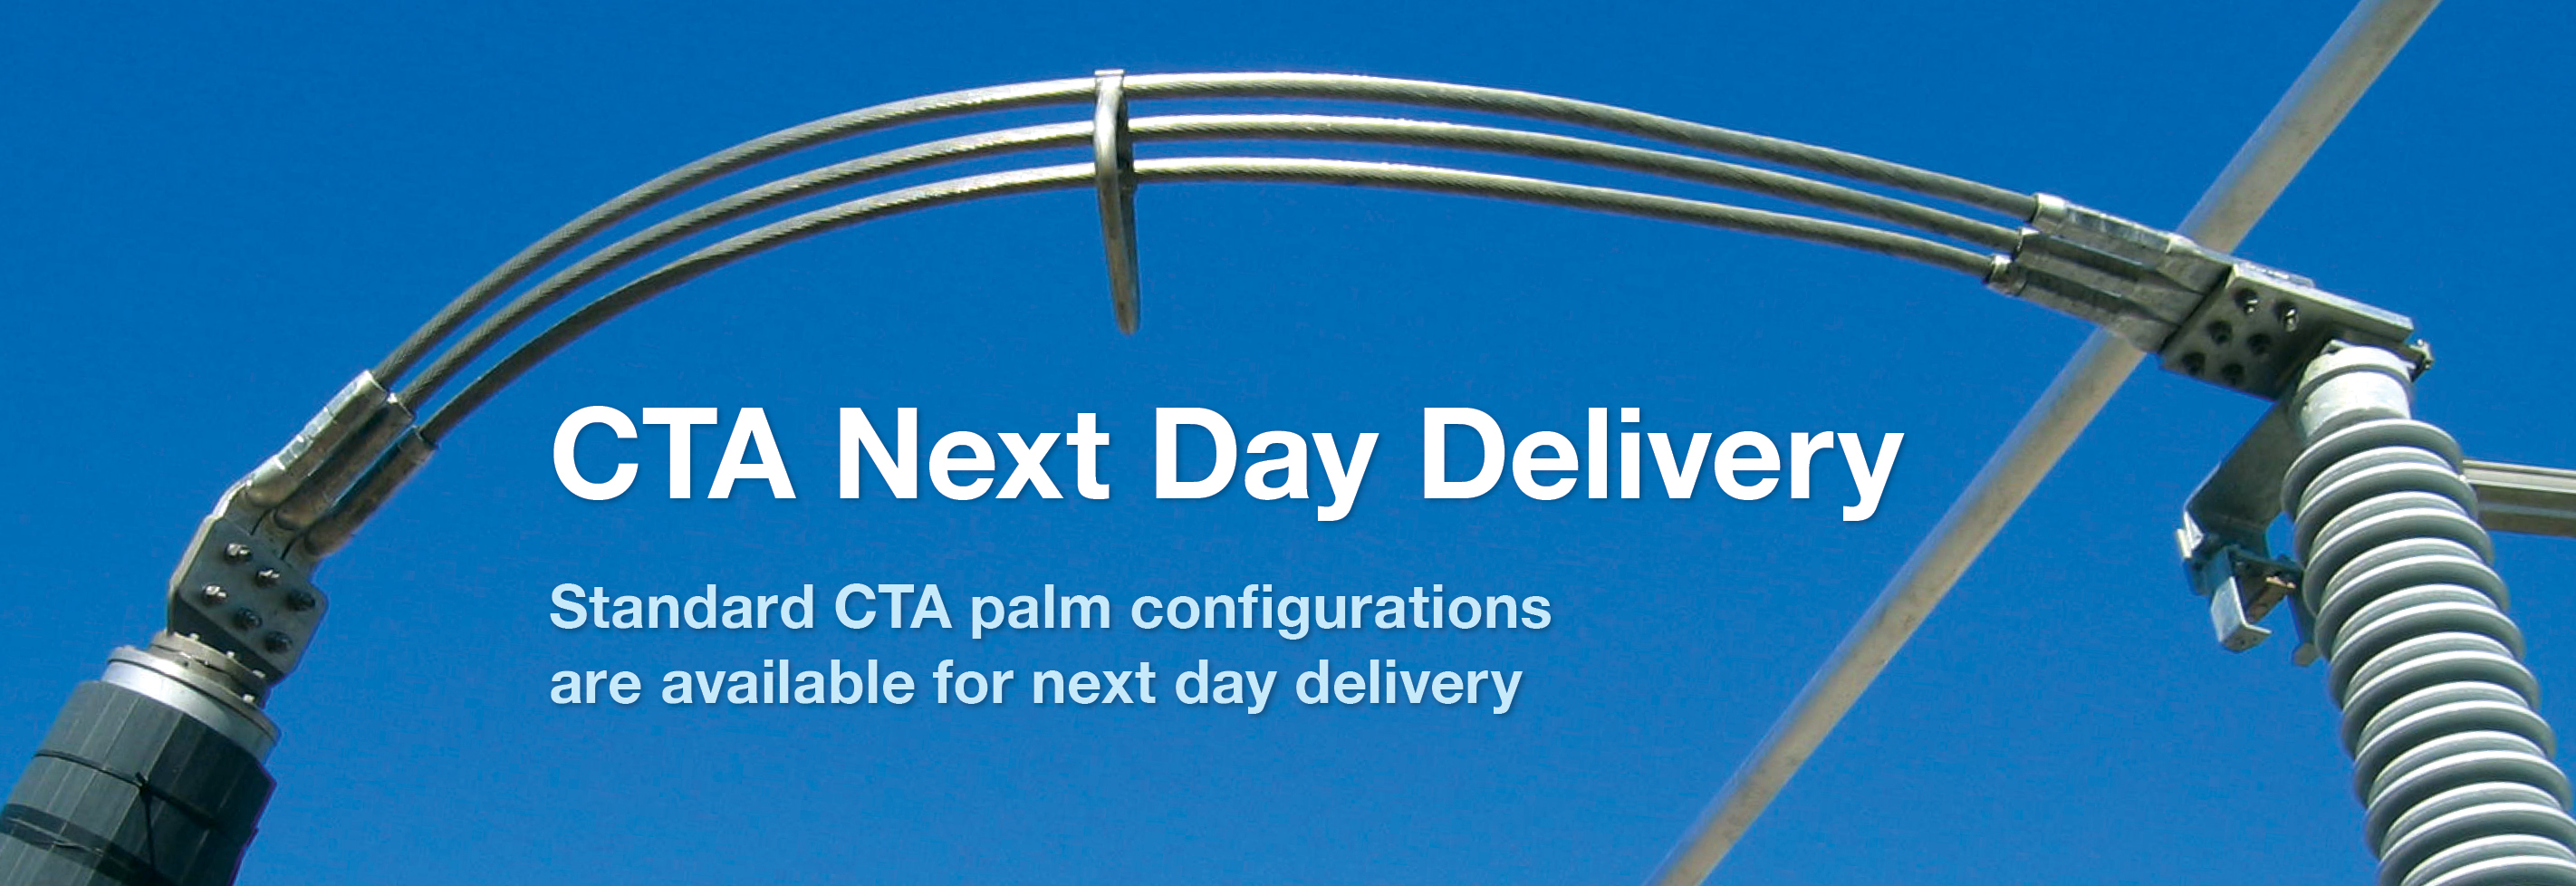 CTA Next Day Delivery